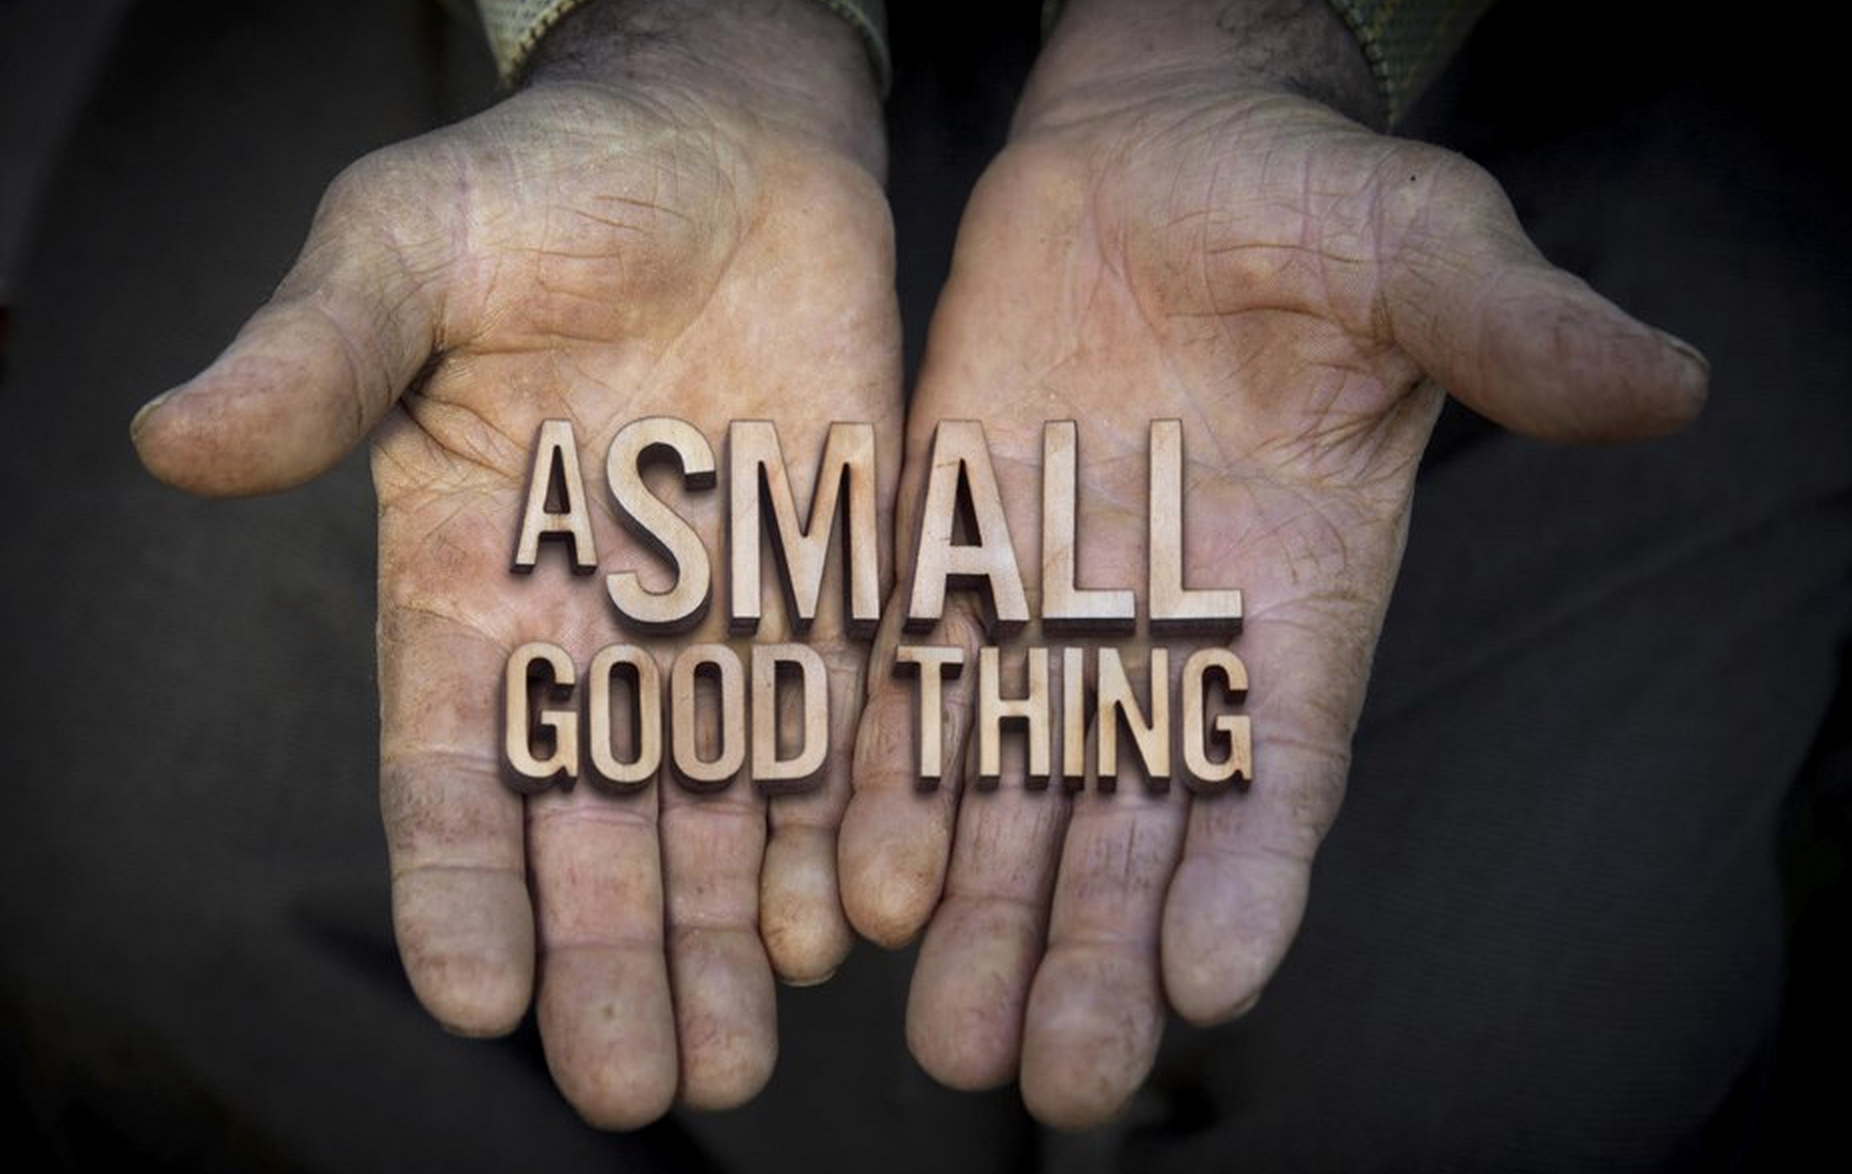 Small_Good_Thing_Hands_Logo_(1).jpg